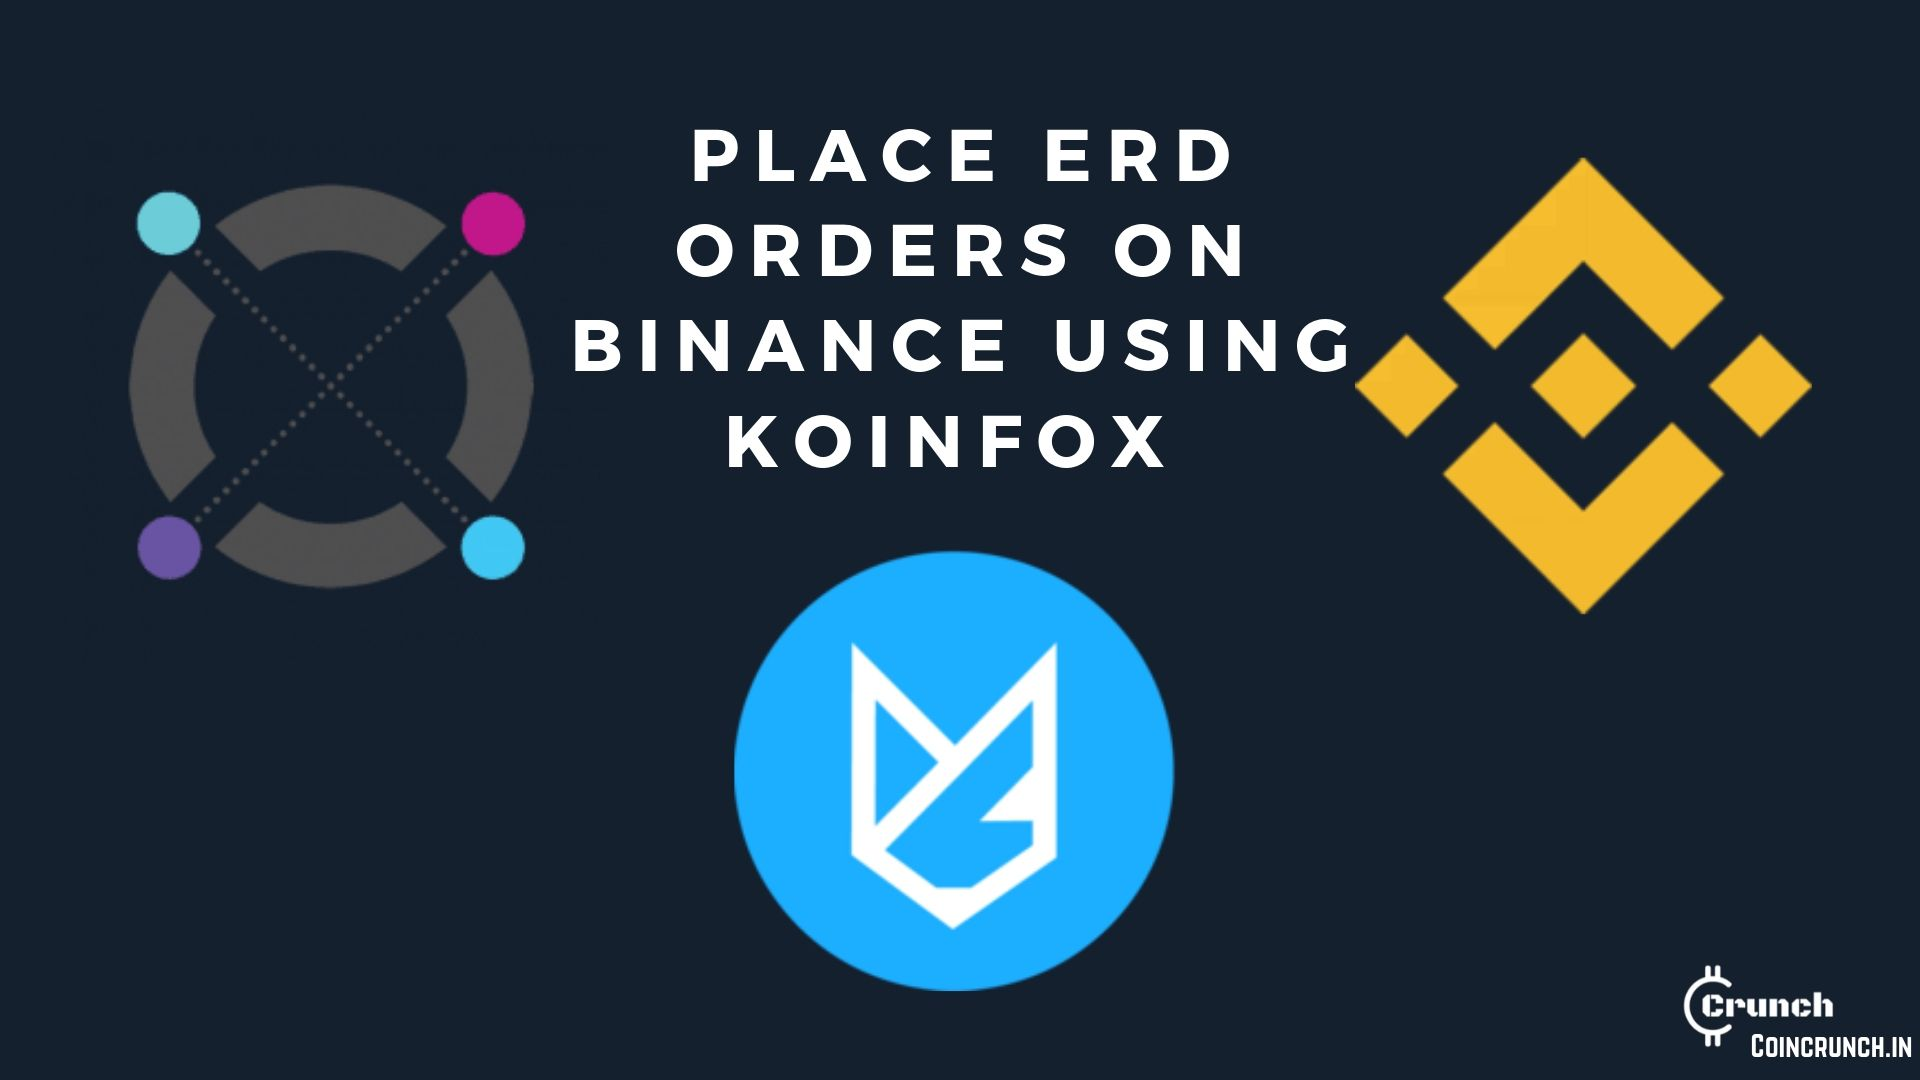 placing orders for ERD before it is listed on Binance using Koinfox